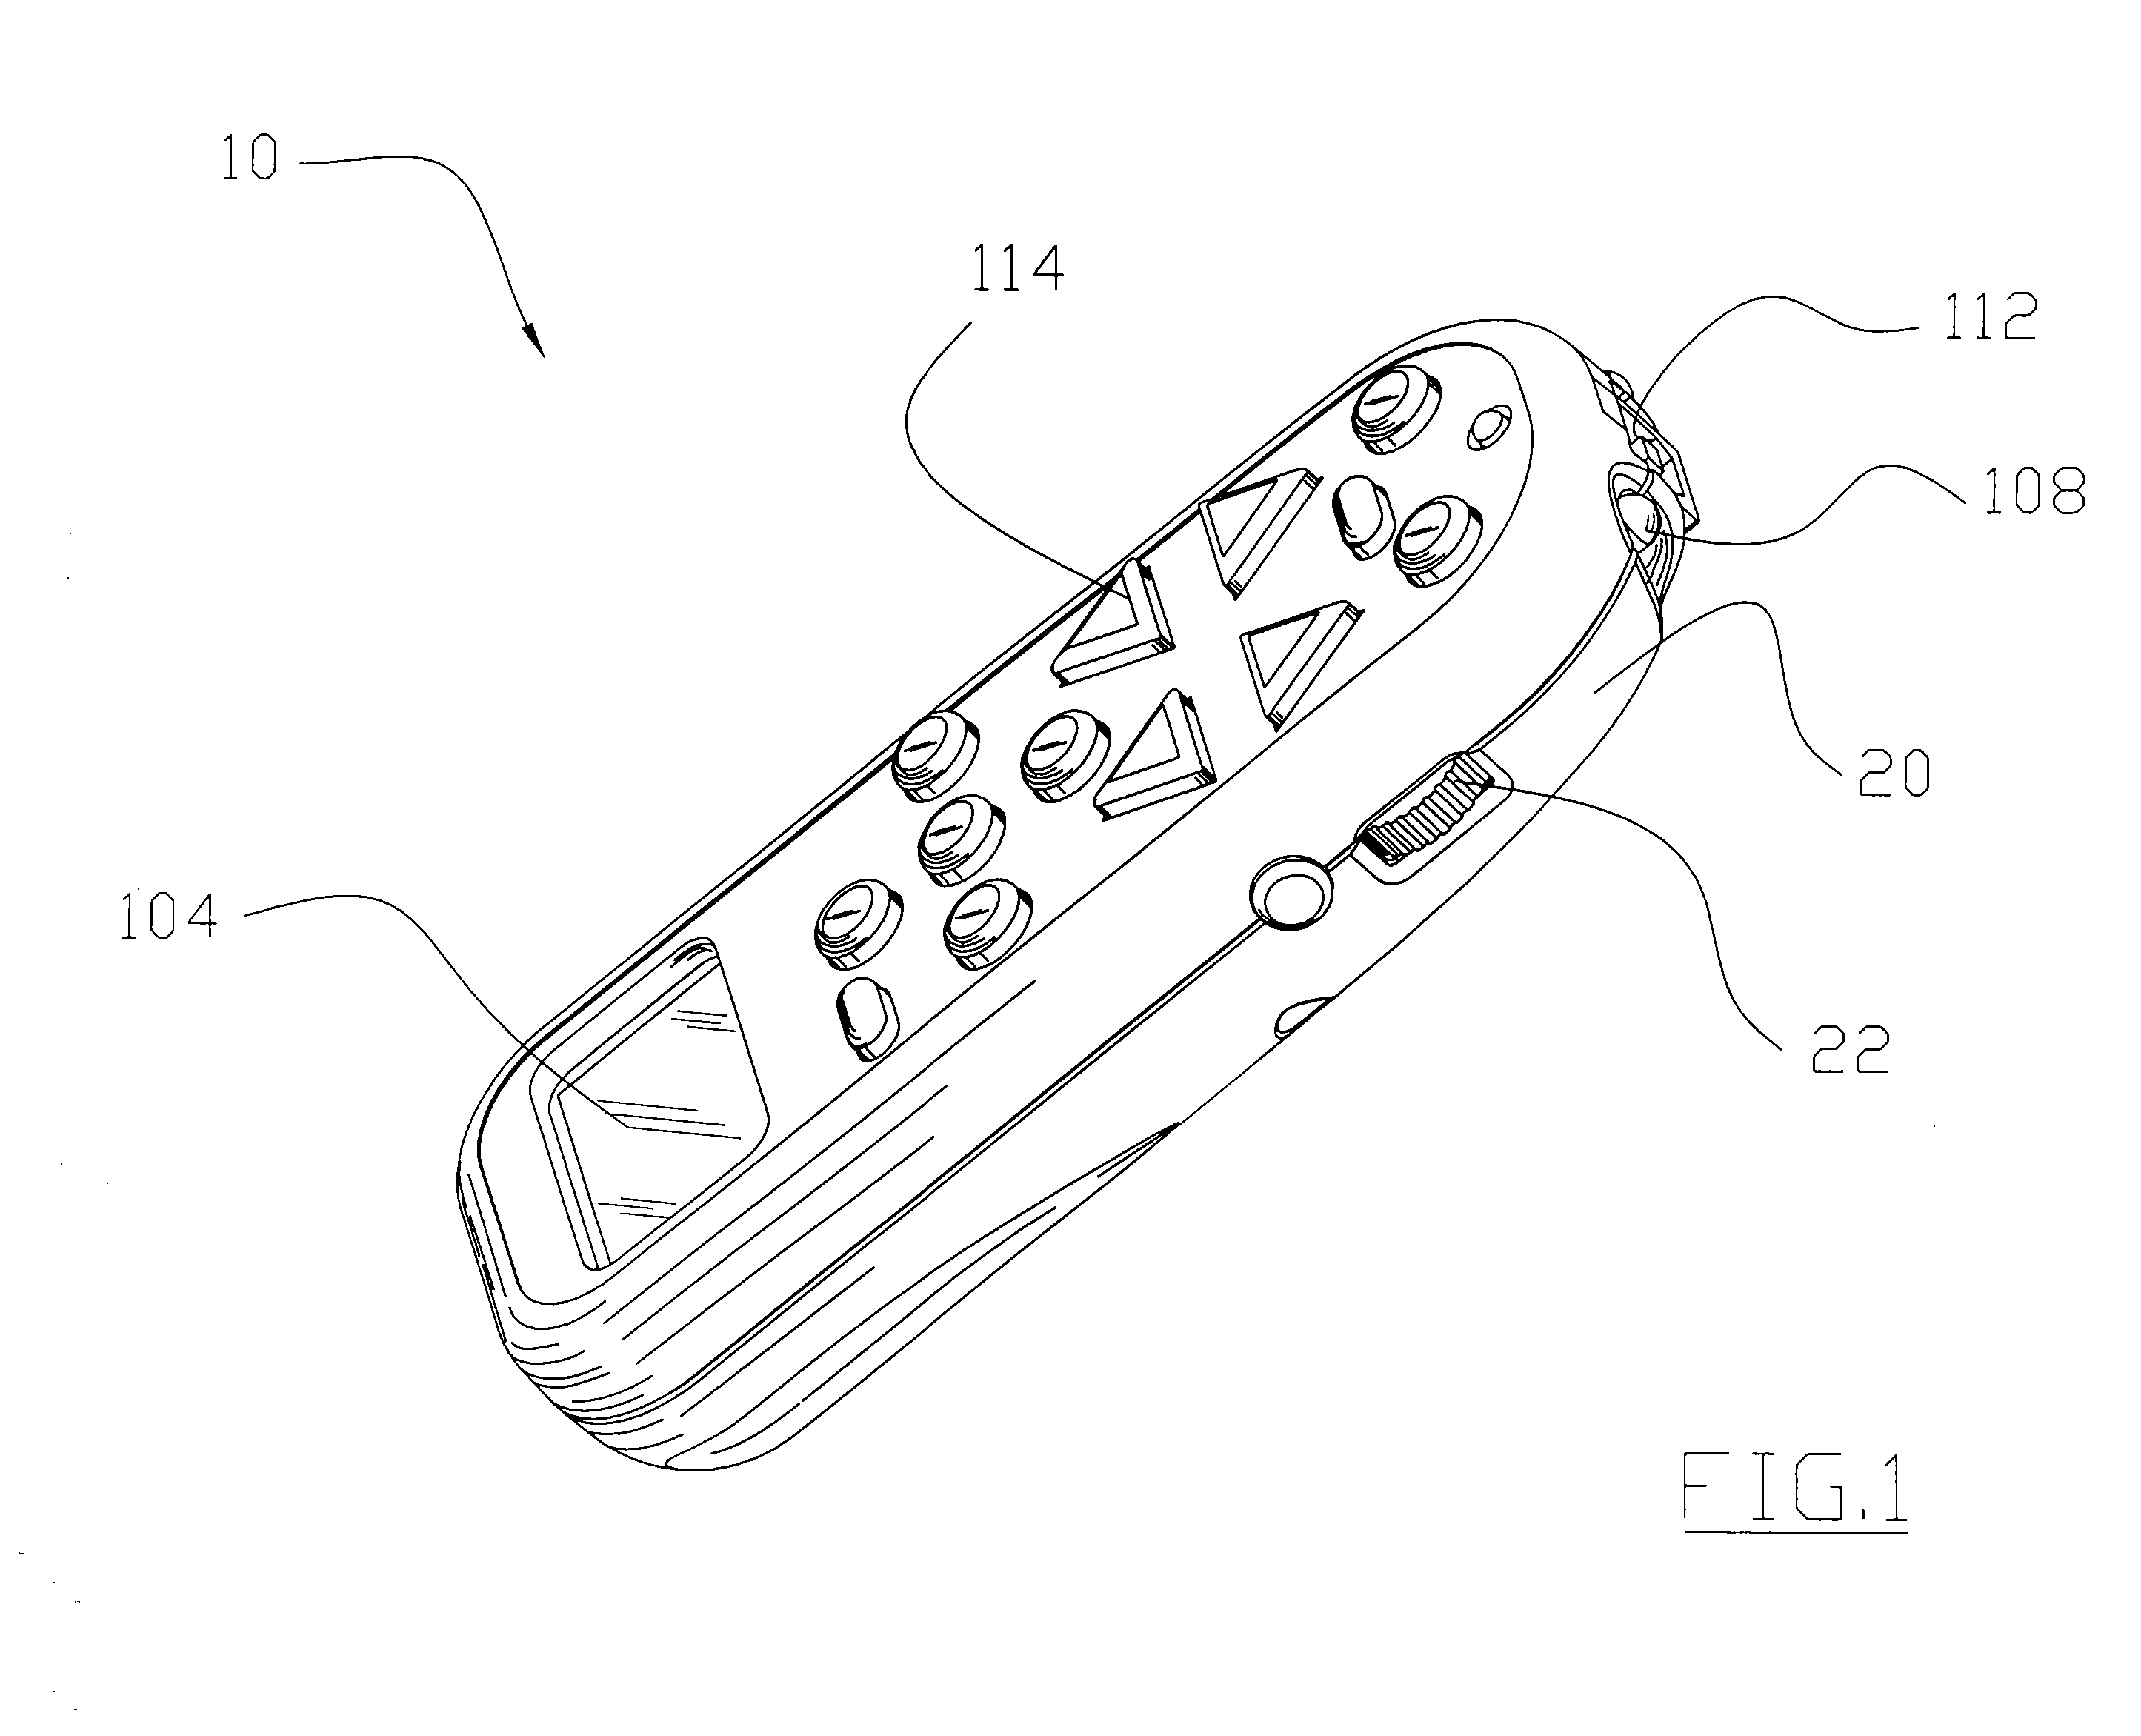 A patent drawing of the original Harmony remote by Easy Zapper, complee with a side dial and a LCD screen on the bottom.